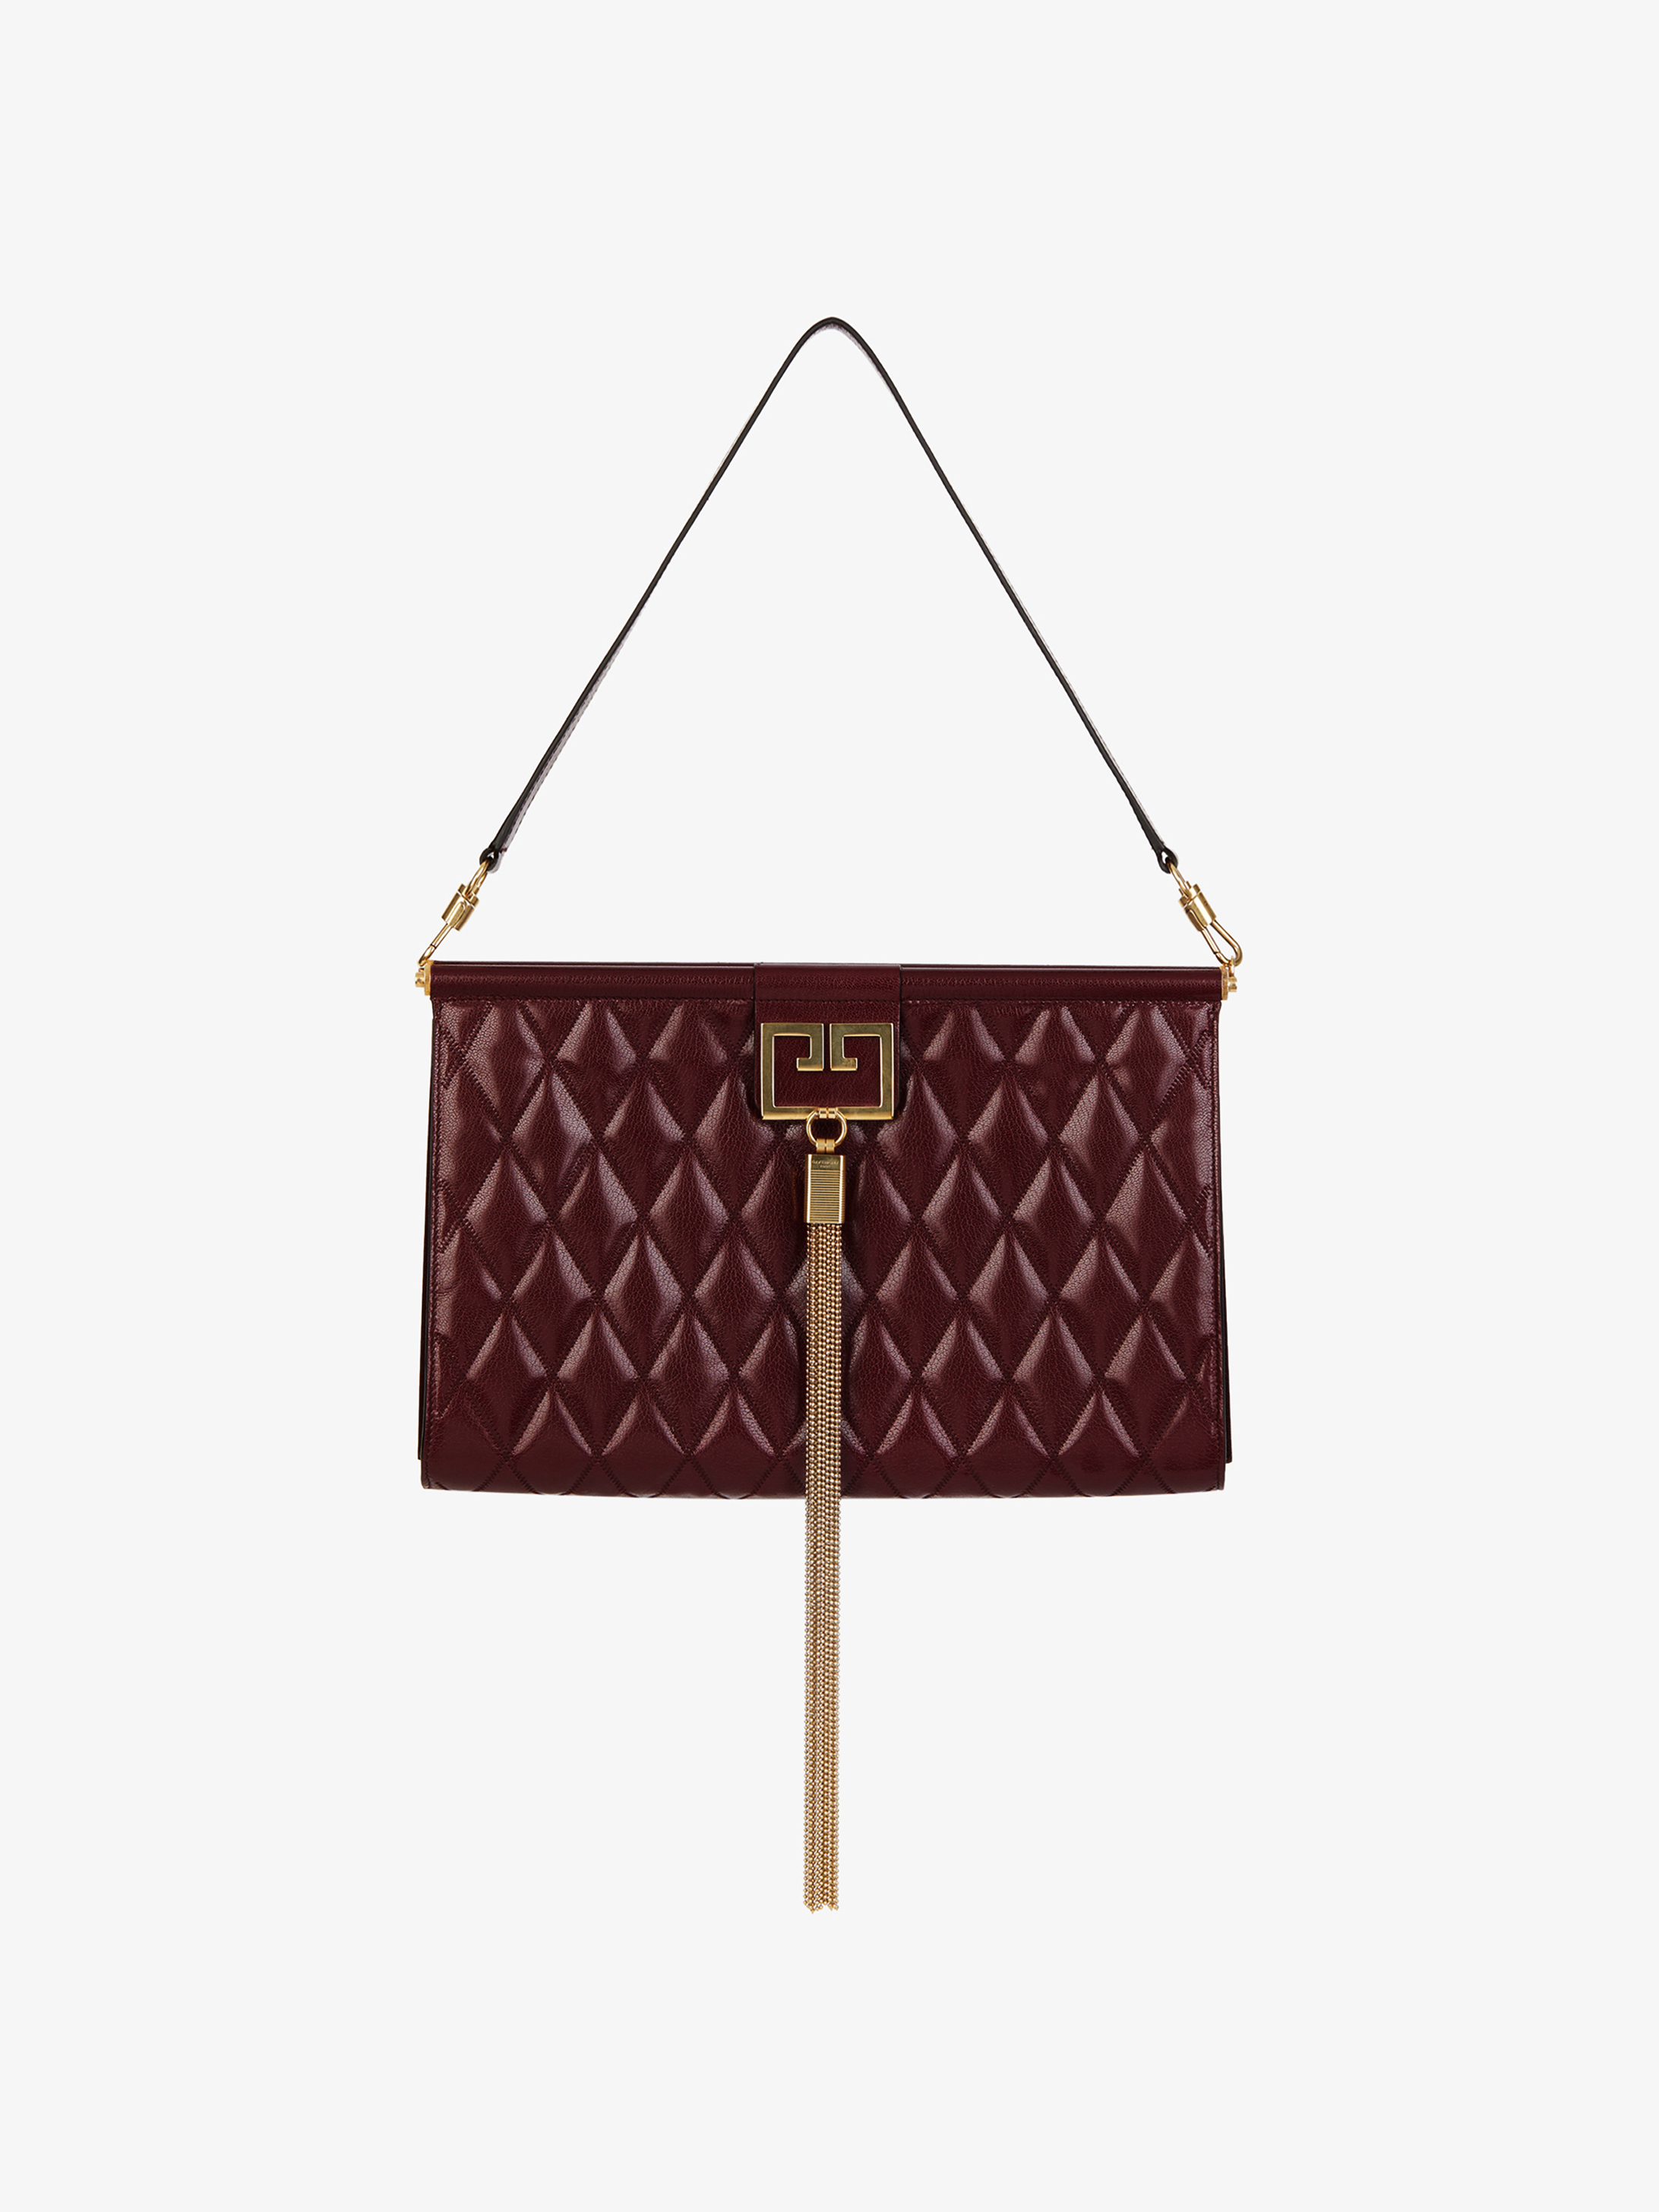 Large GEM bag in diamon quilted leather